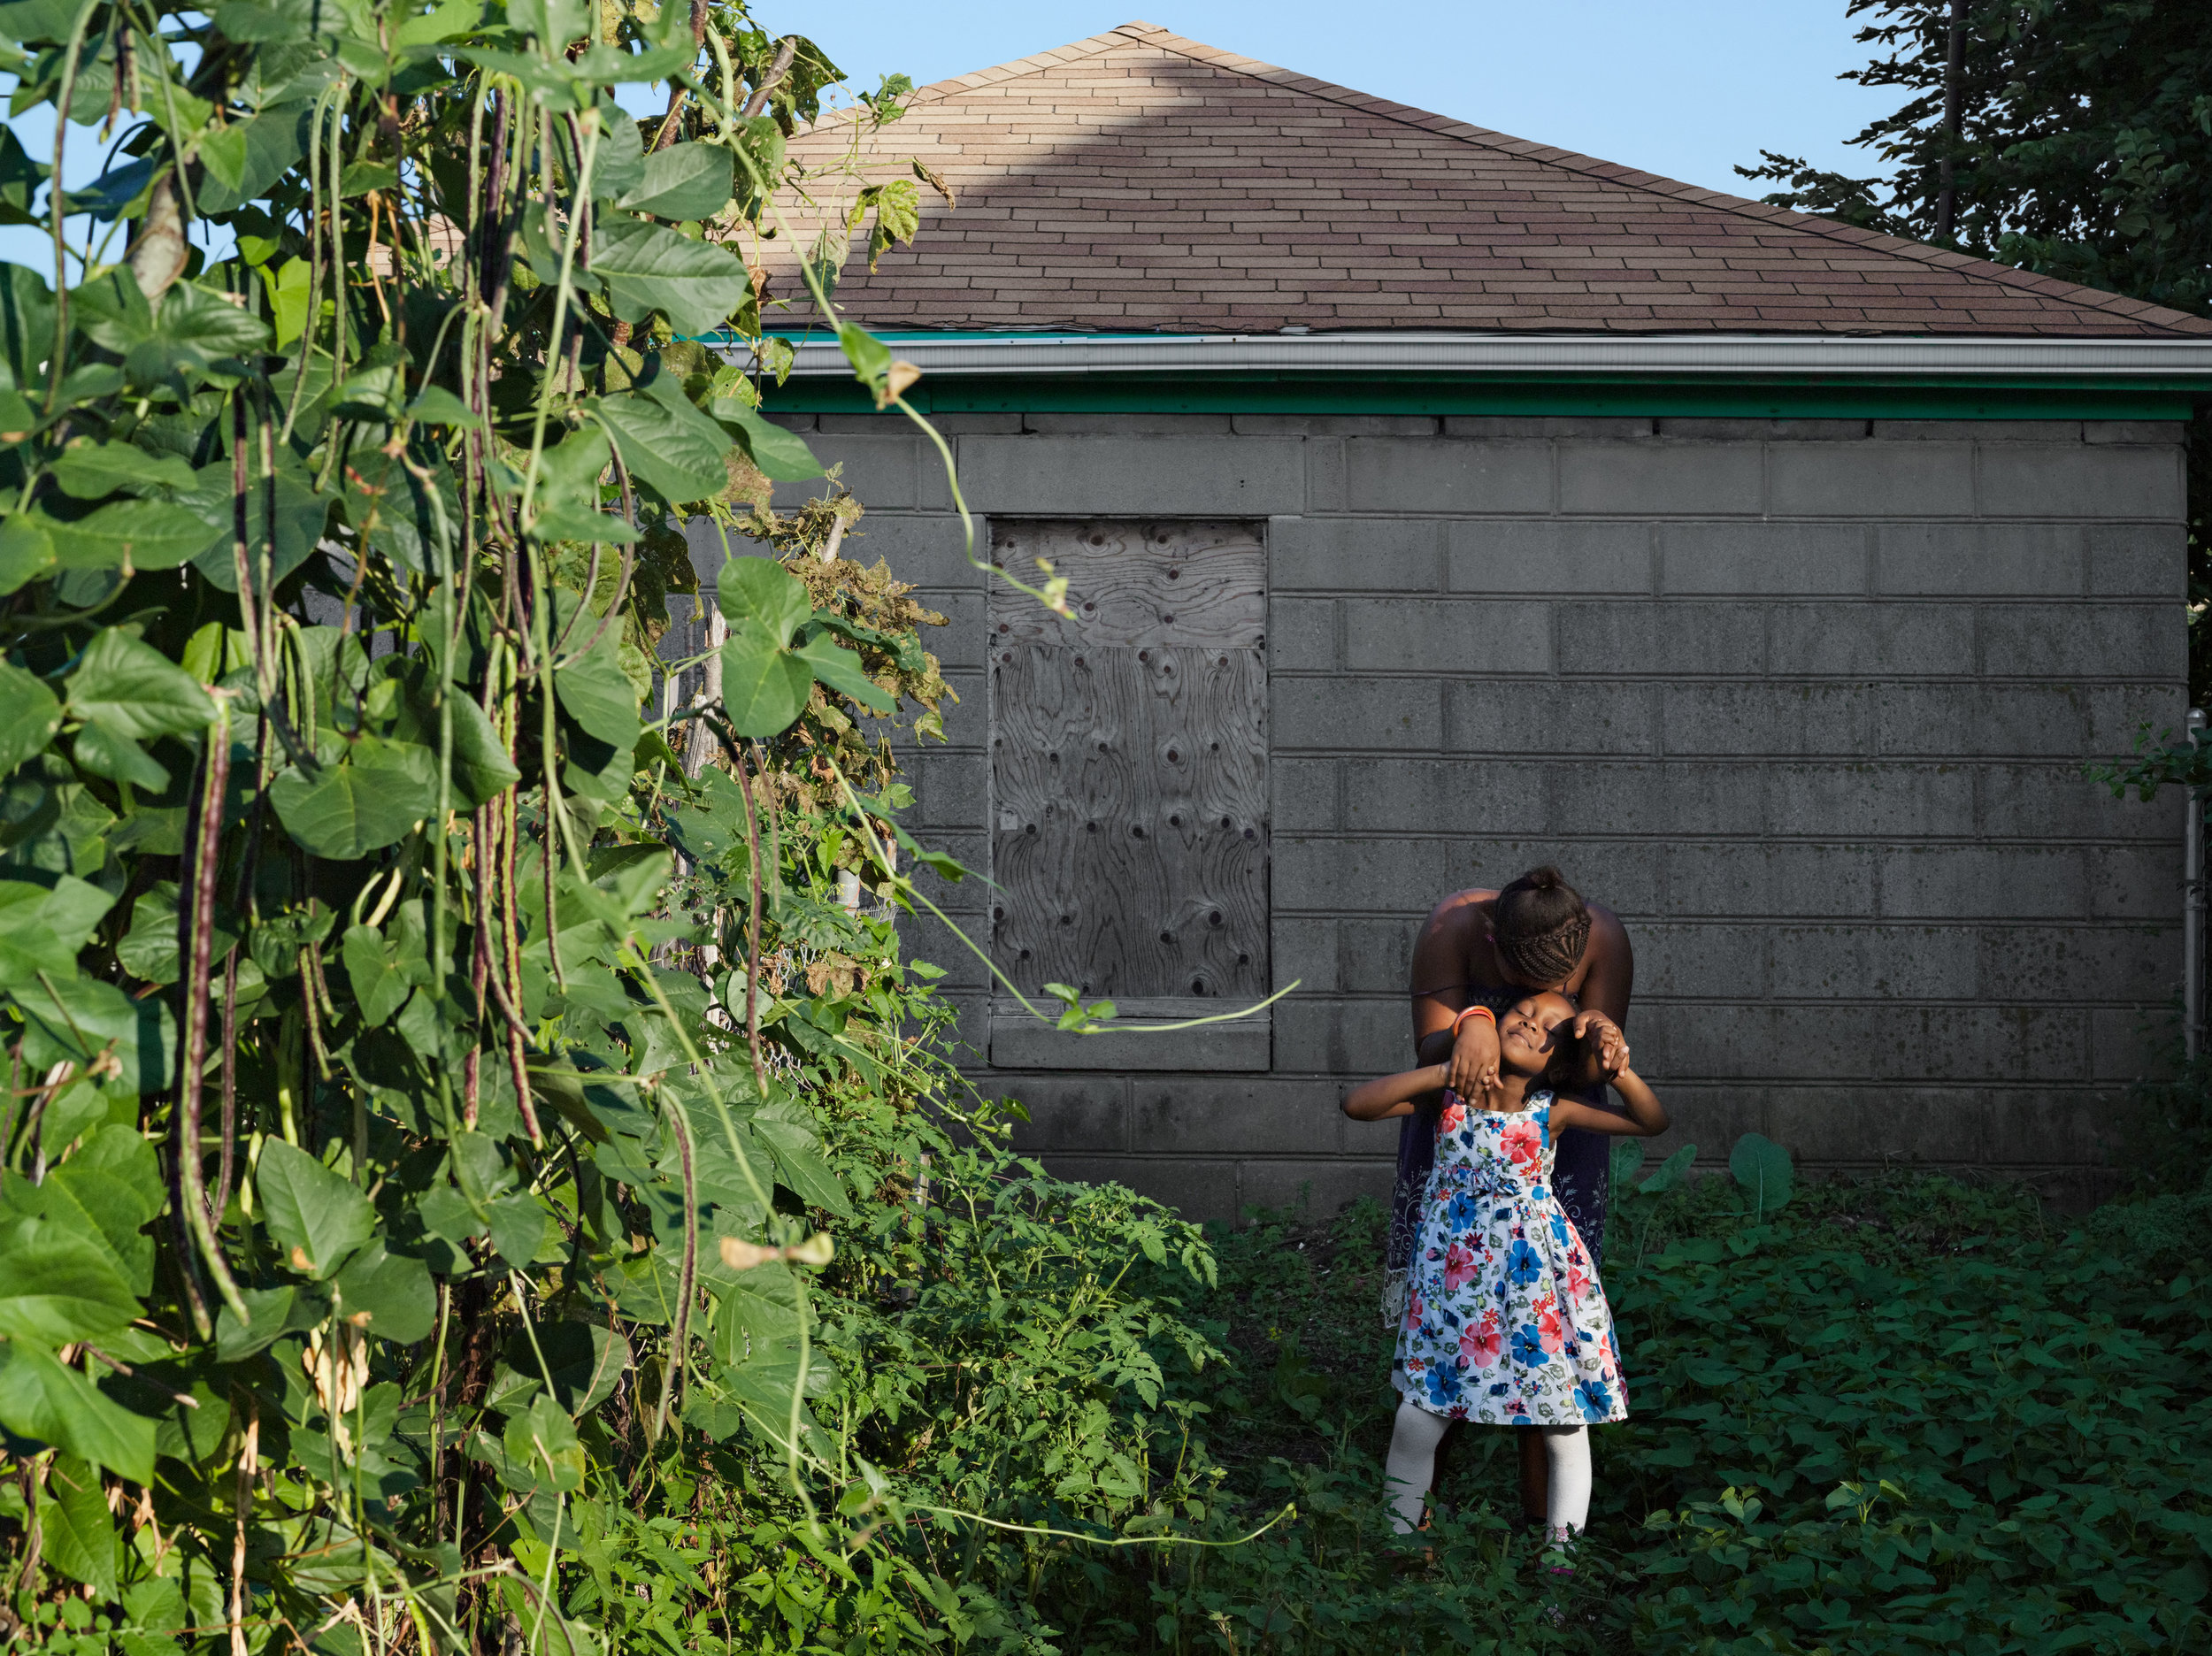 © Lucas Foglia (Alice and Leeasia in their Garden, Southside Community Land Trust, Rhode Island 2011)